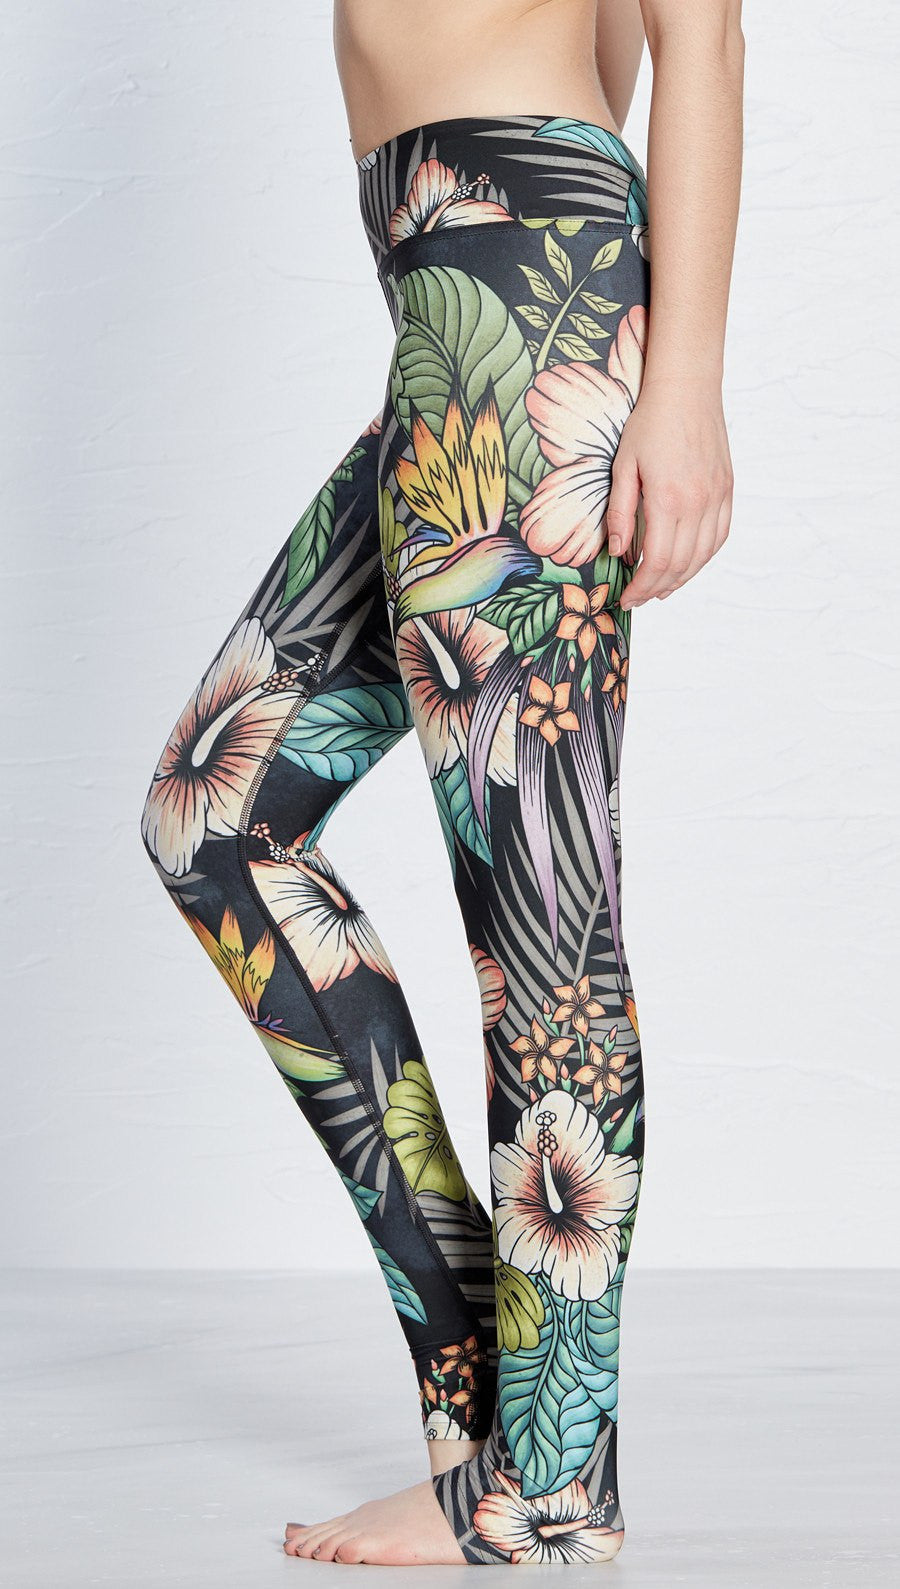 af246def1c9f5 close up side view of printed full length leggings with tropical floral  design and black background